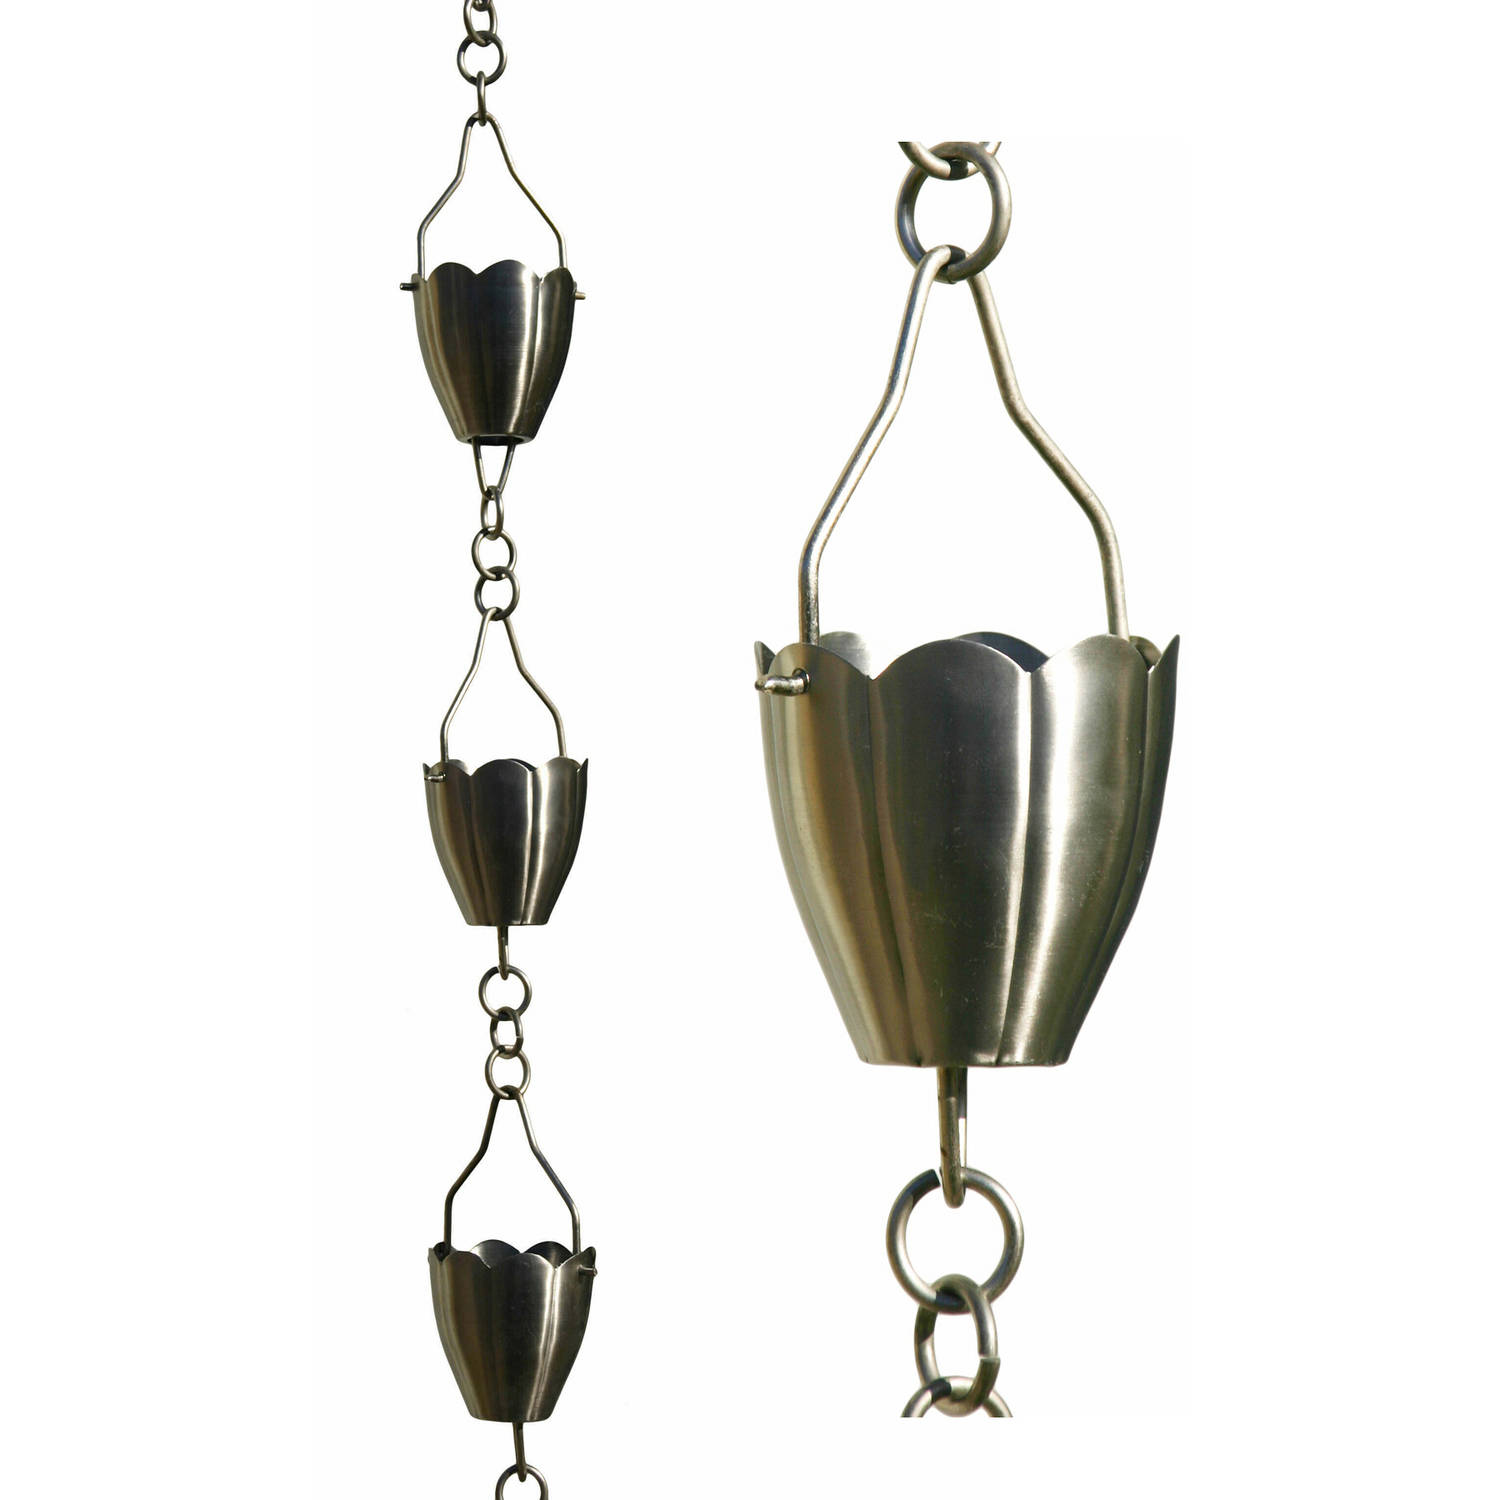 Patina Products R267 8.5' Brushed Stainless Steel Flower Cup Rain Chain